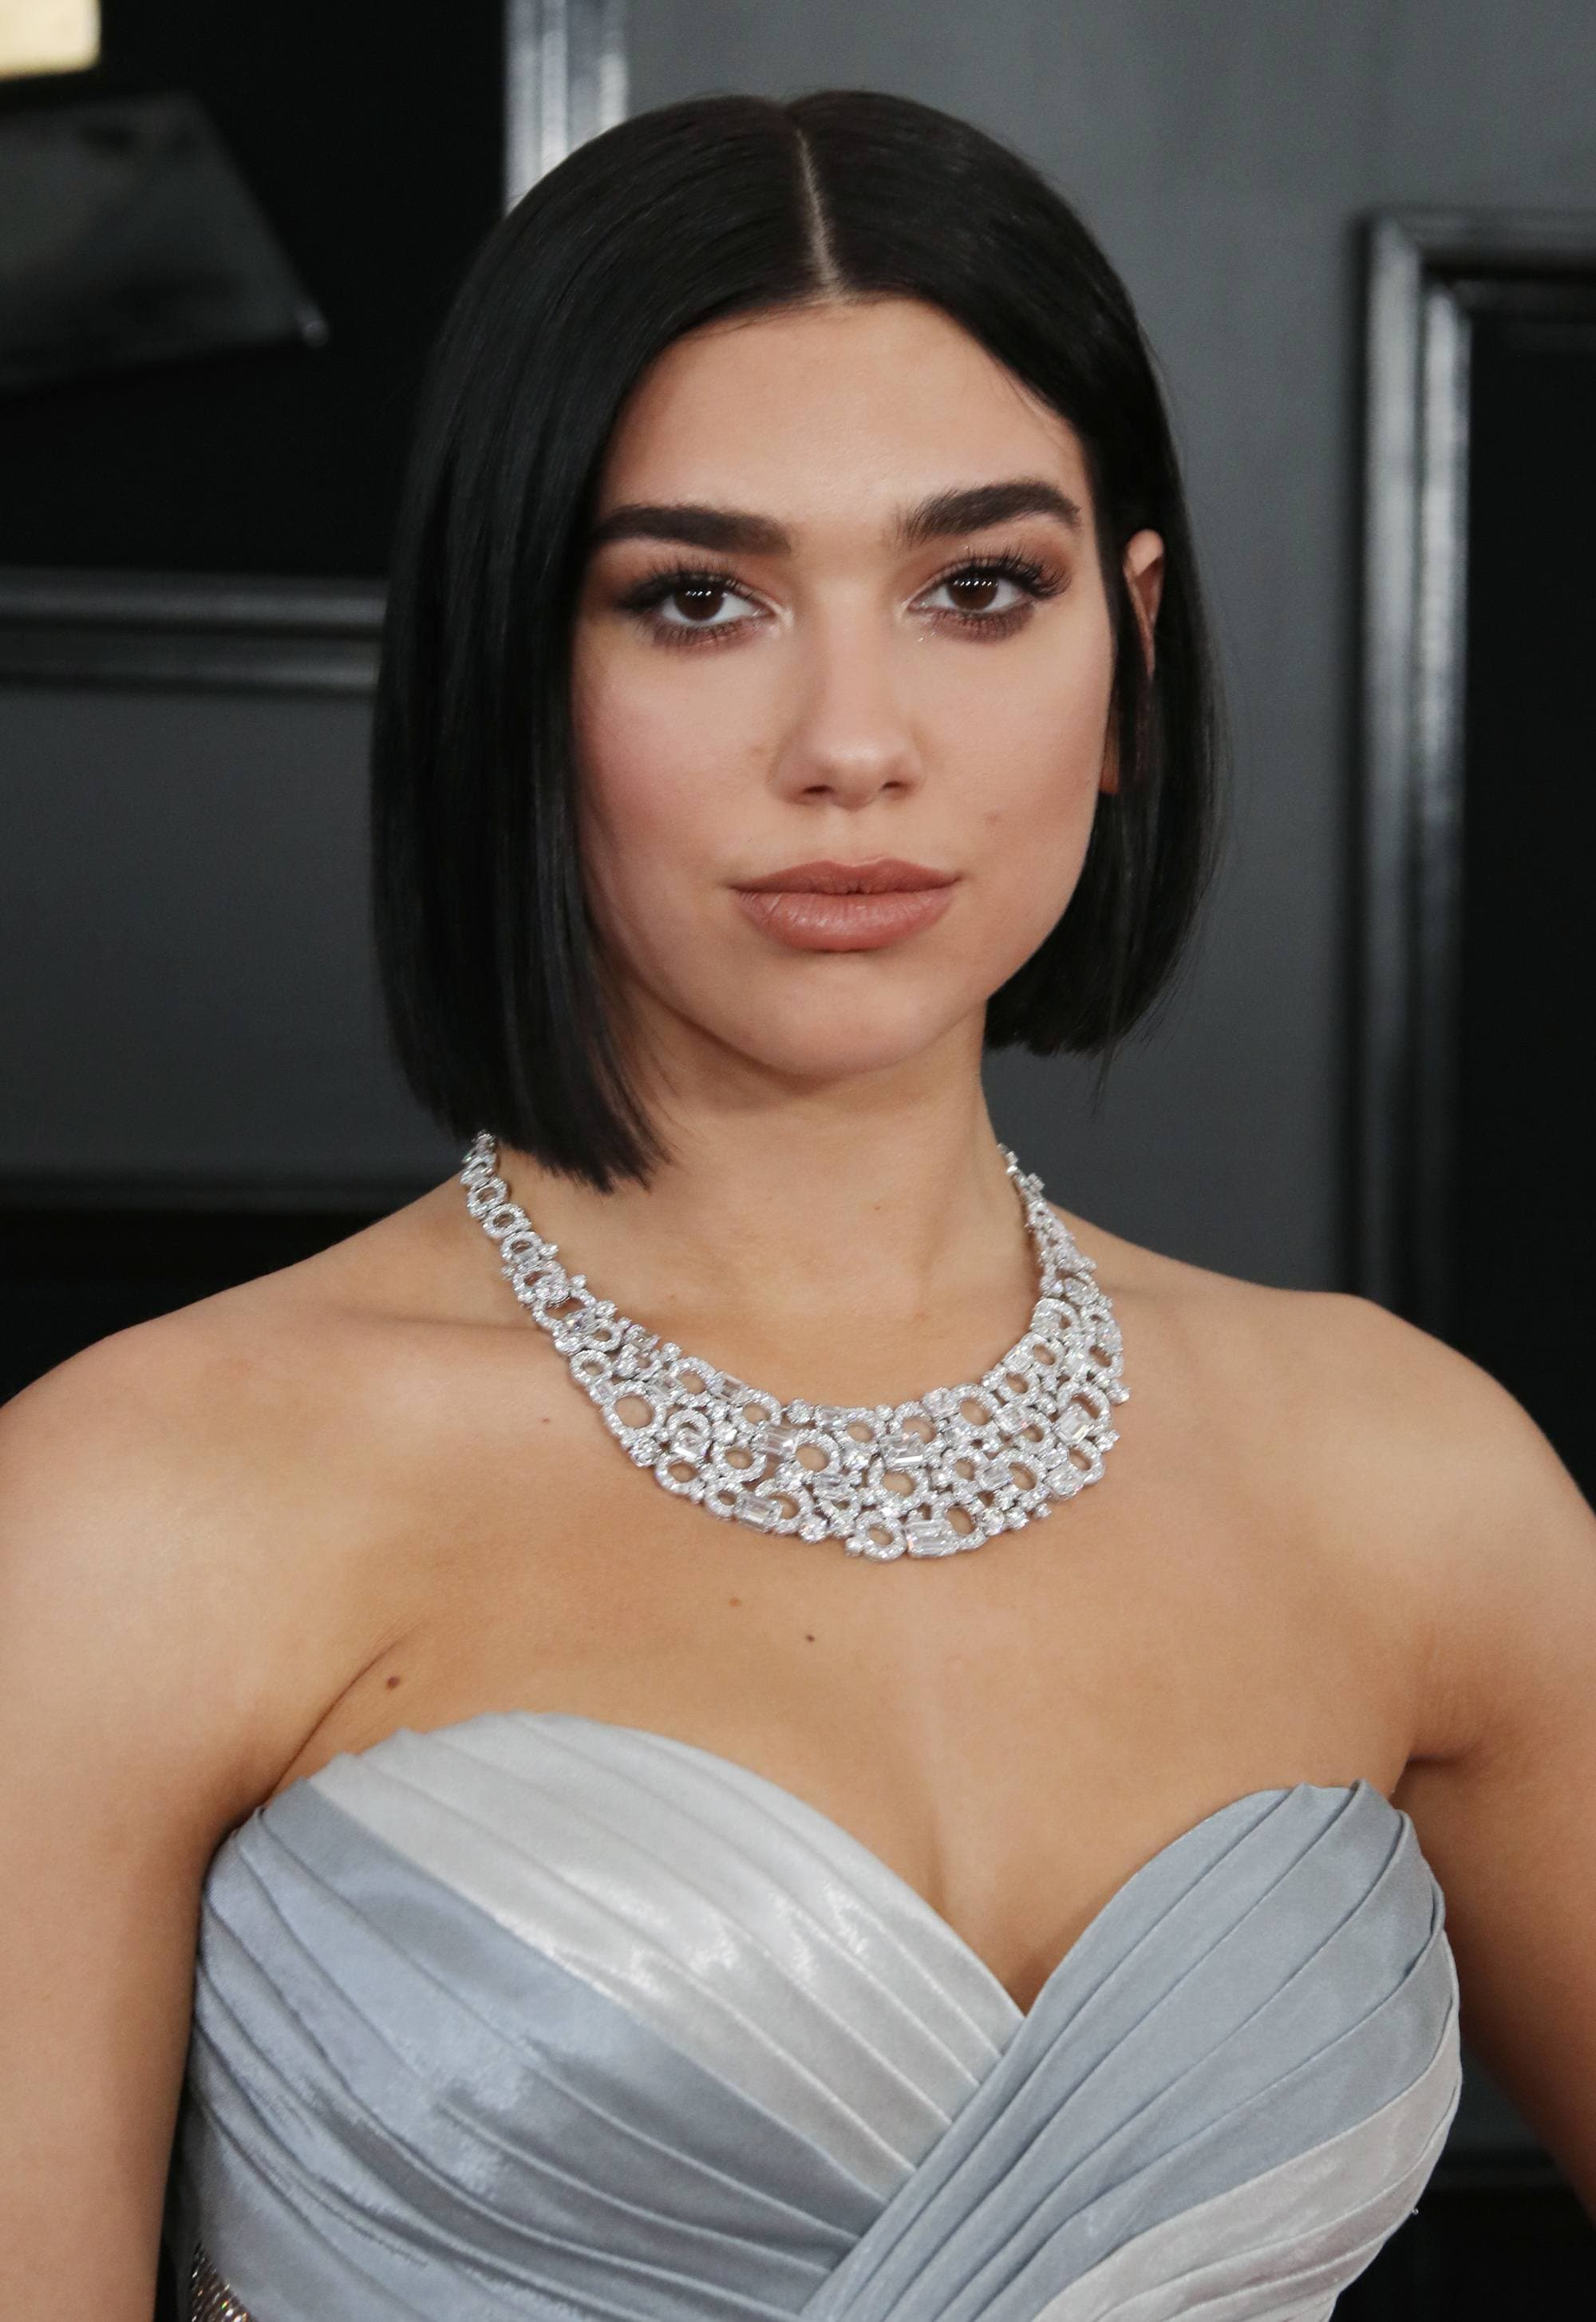 Red carpet hairstyles: Dua Lipa with dark brown straight blunt bob on red carpet wearing a strapless pale blue dress and diamond necklace.